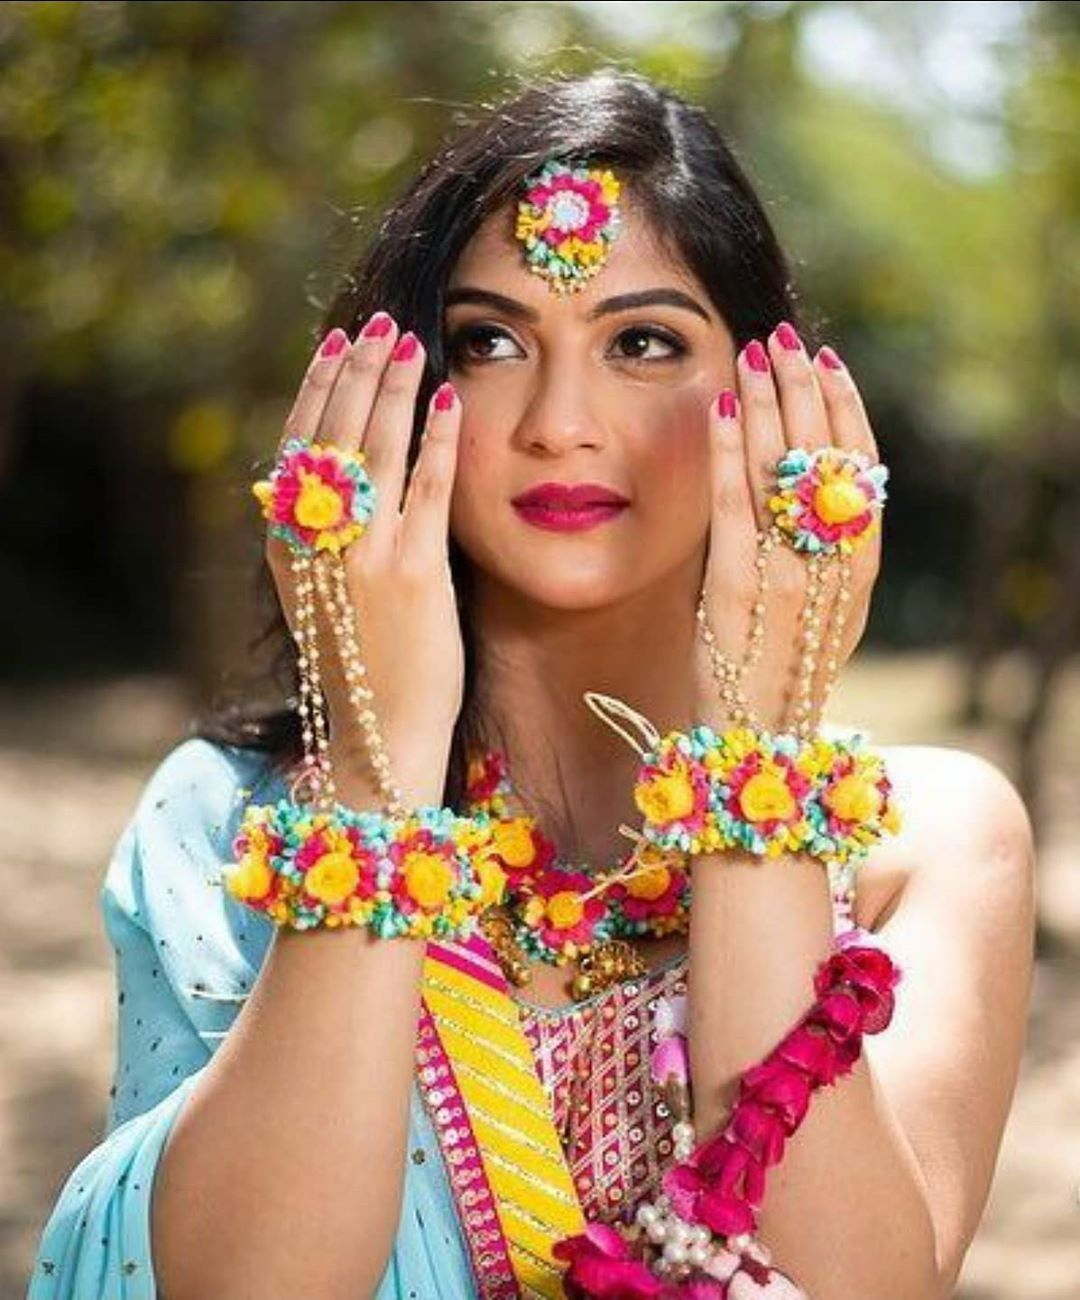 Add a refreshing touch to your mehendi- haldi ceremony with these trending floral jewelry and accessory ideas for the bride-to-be. ..... . . . For more ideas and execution follow us @mrgevennts . . . #weddingorganisersin #weddingplanner #eventplanners #eventplanner #bride #bridalmehendi #bridemaids #bridaljewelry #bridaljwellery #bridesisters #bridegoals #weddinggoals #weddingjewellery #weddings#weddingphotographers